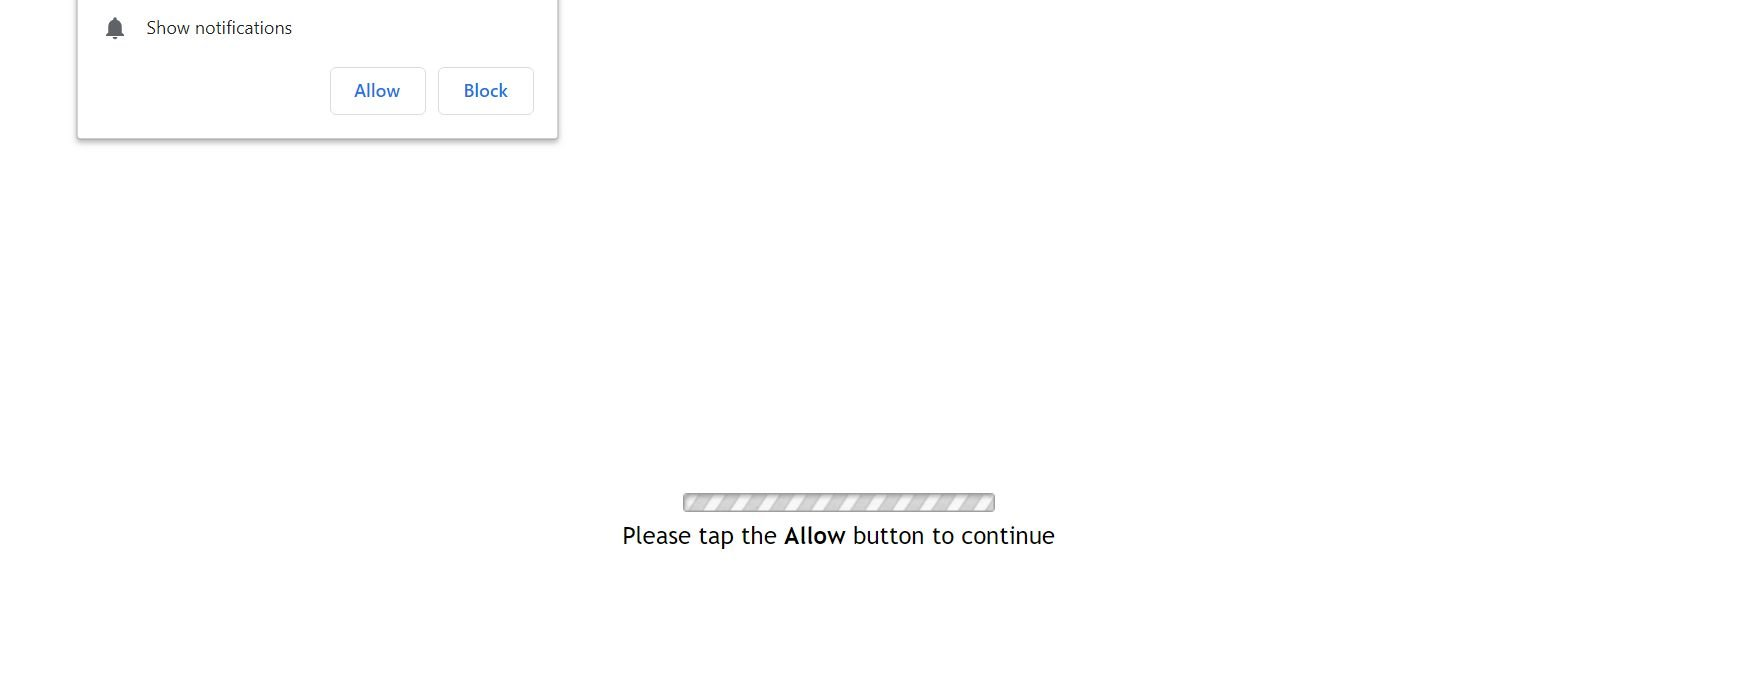 Image: Chrome browser is redirected to the Pushlommy.com site